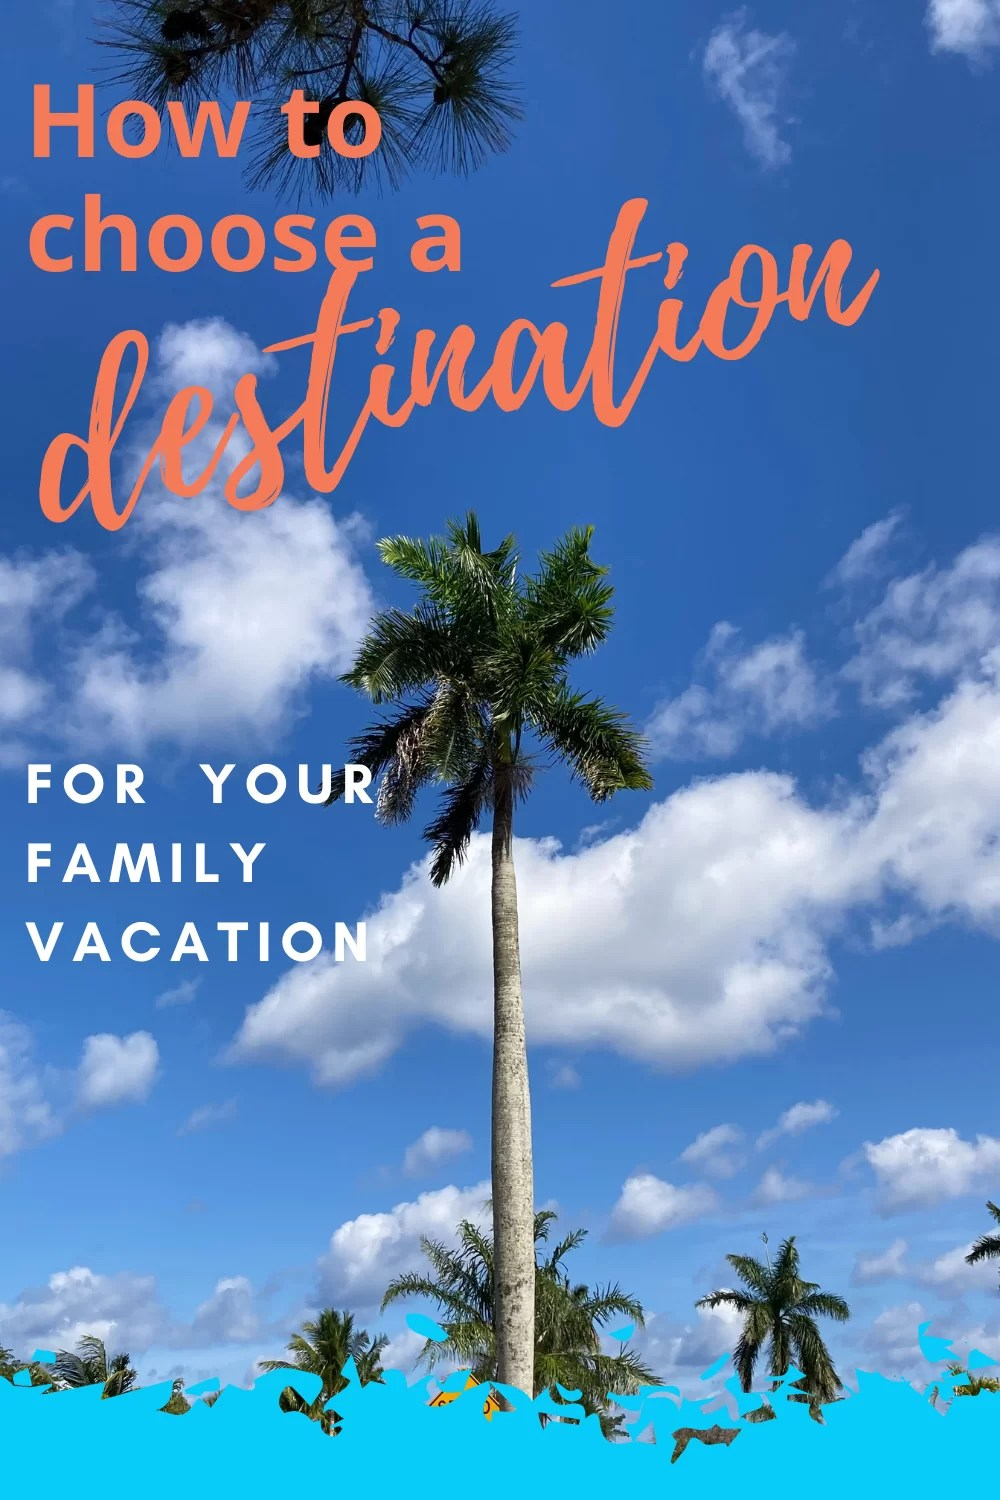 How to choose a destination for your famiily vacation over a palm tree